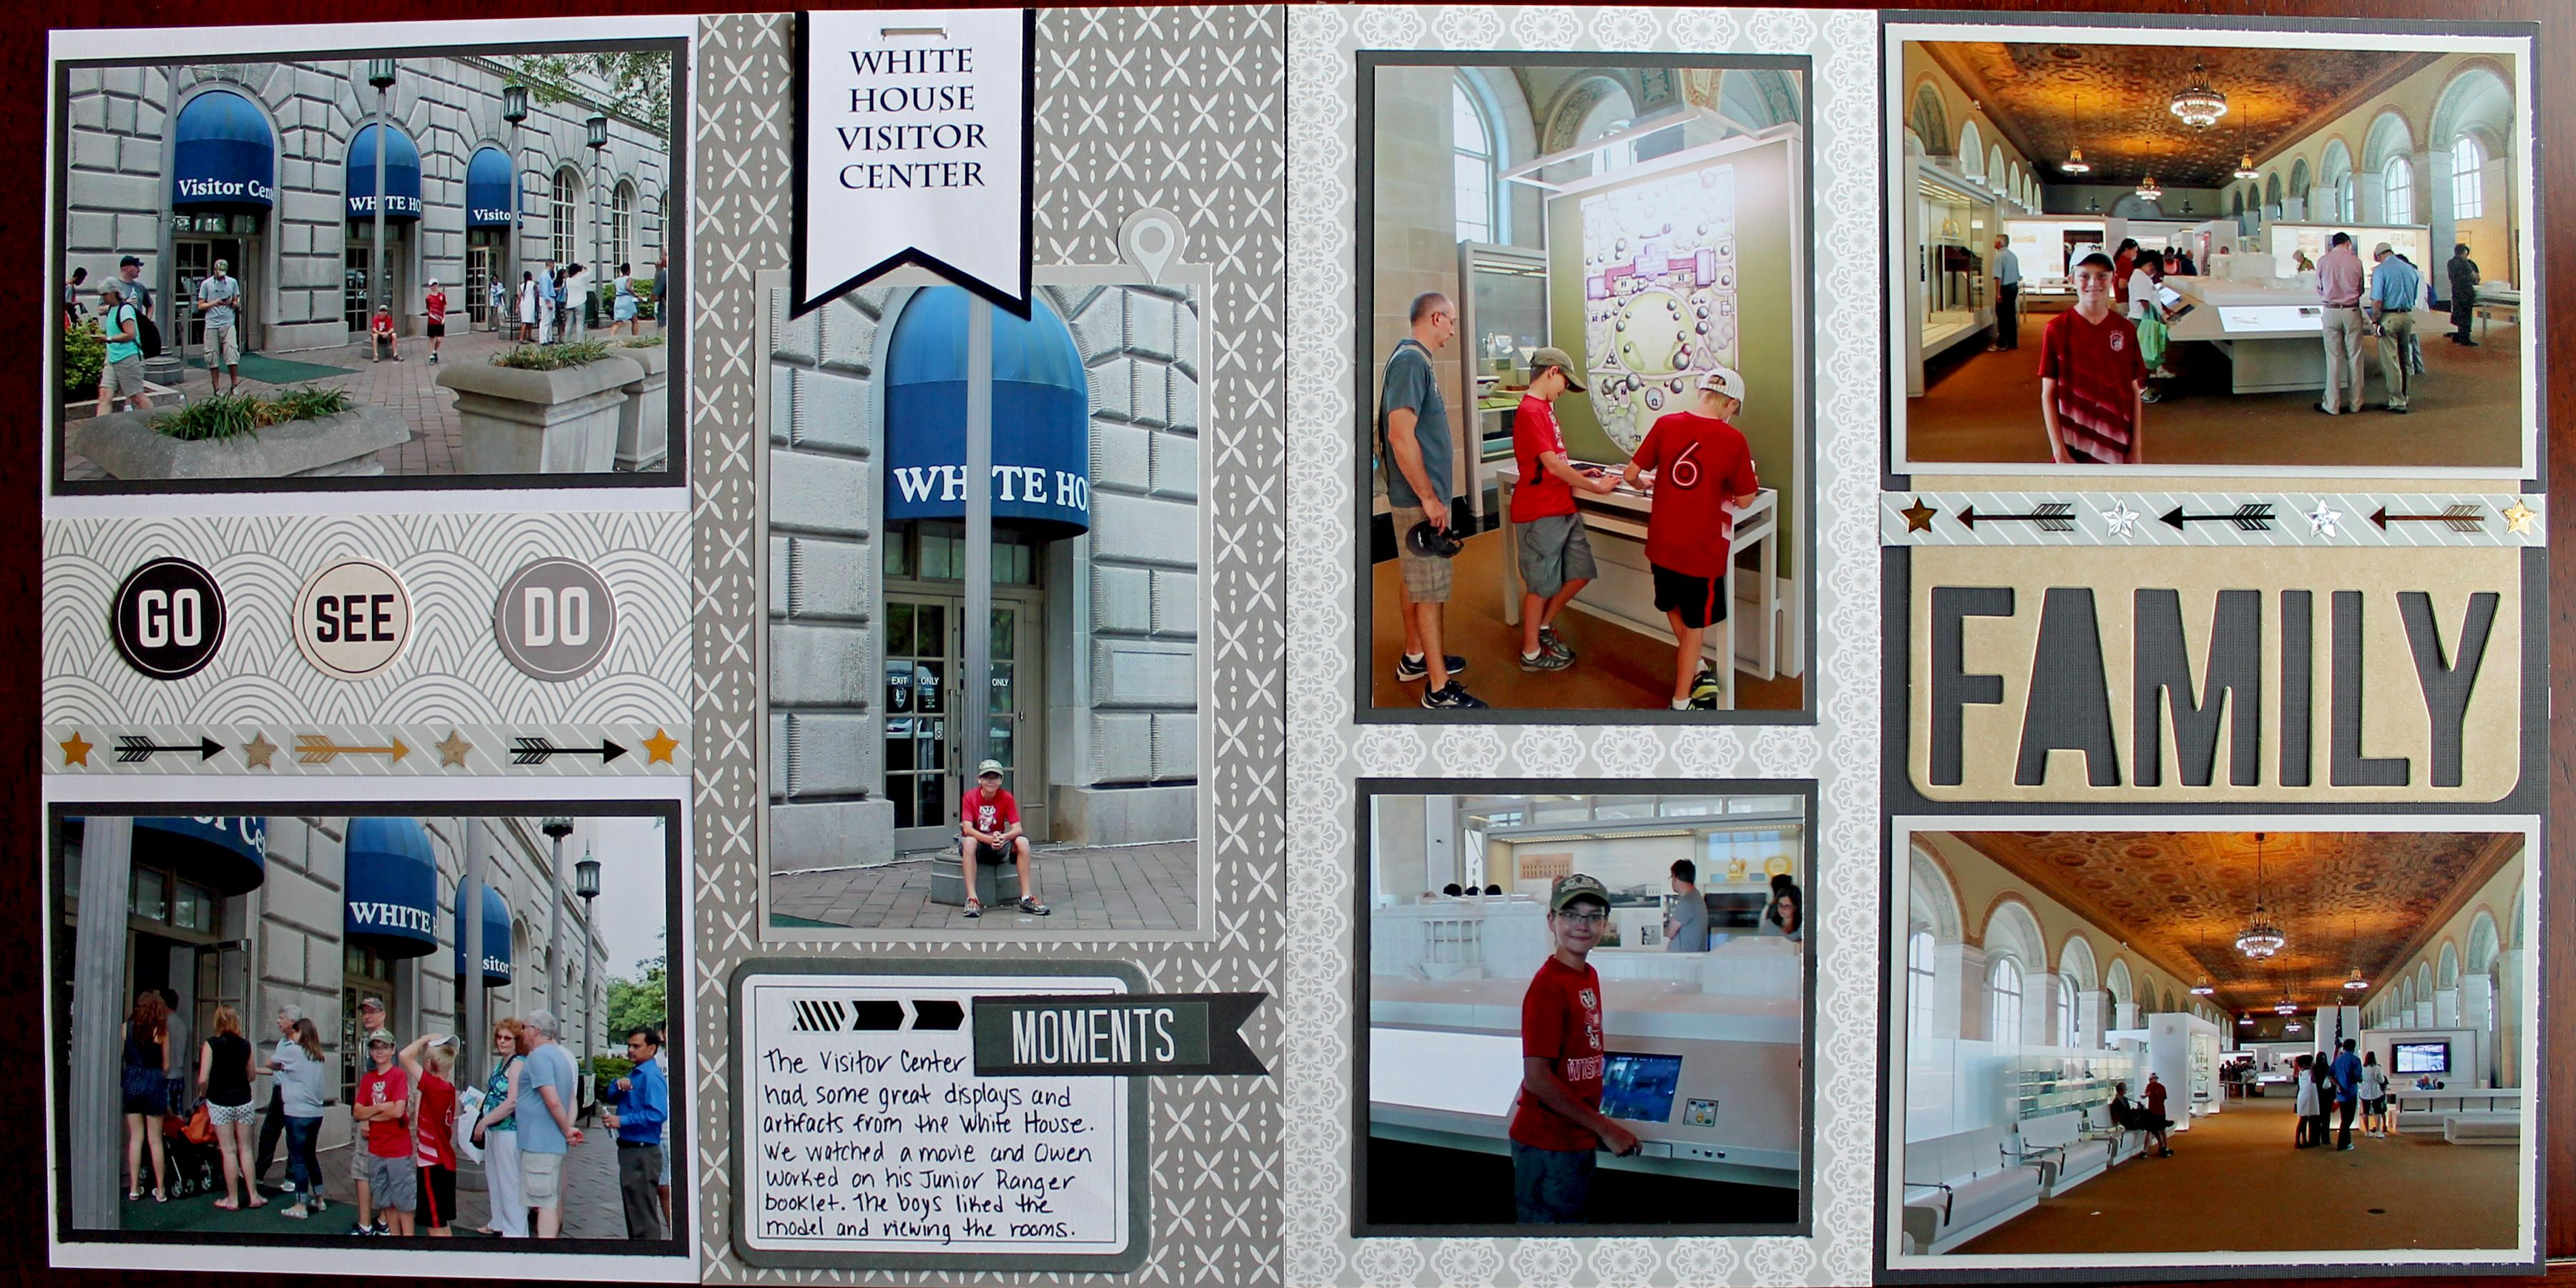 White House Visitor Center Scrapbook Page 12x12 Layout Washington Dc Scrapbook C Scrapbooking Layouts Vacation Vacation Trips Scrapbooking Layouts Travel